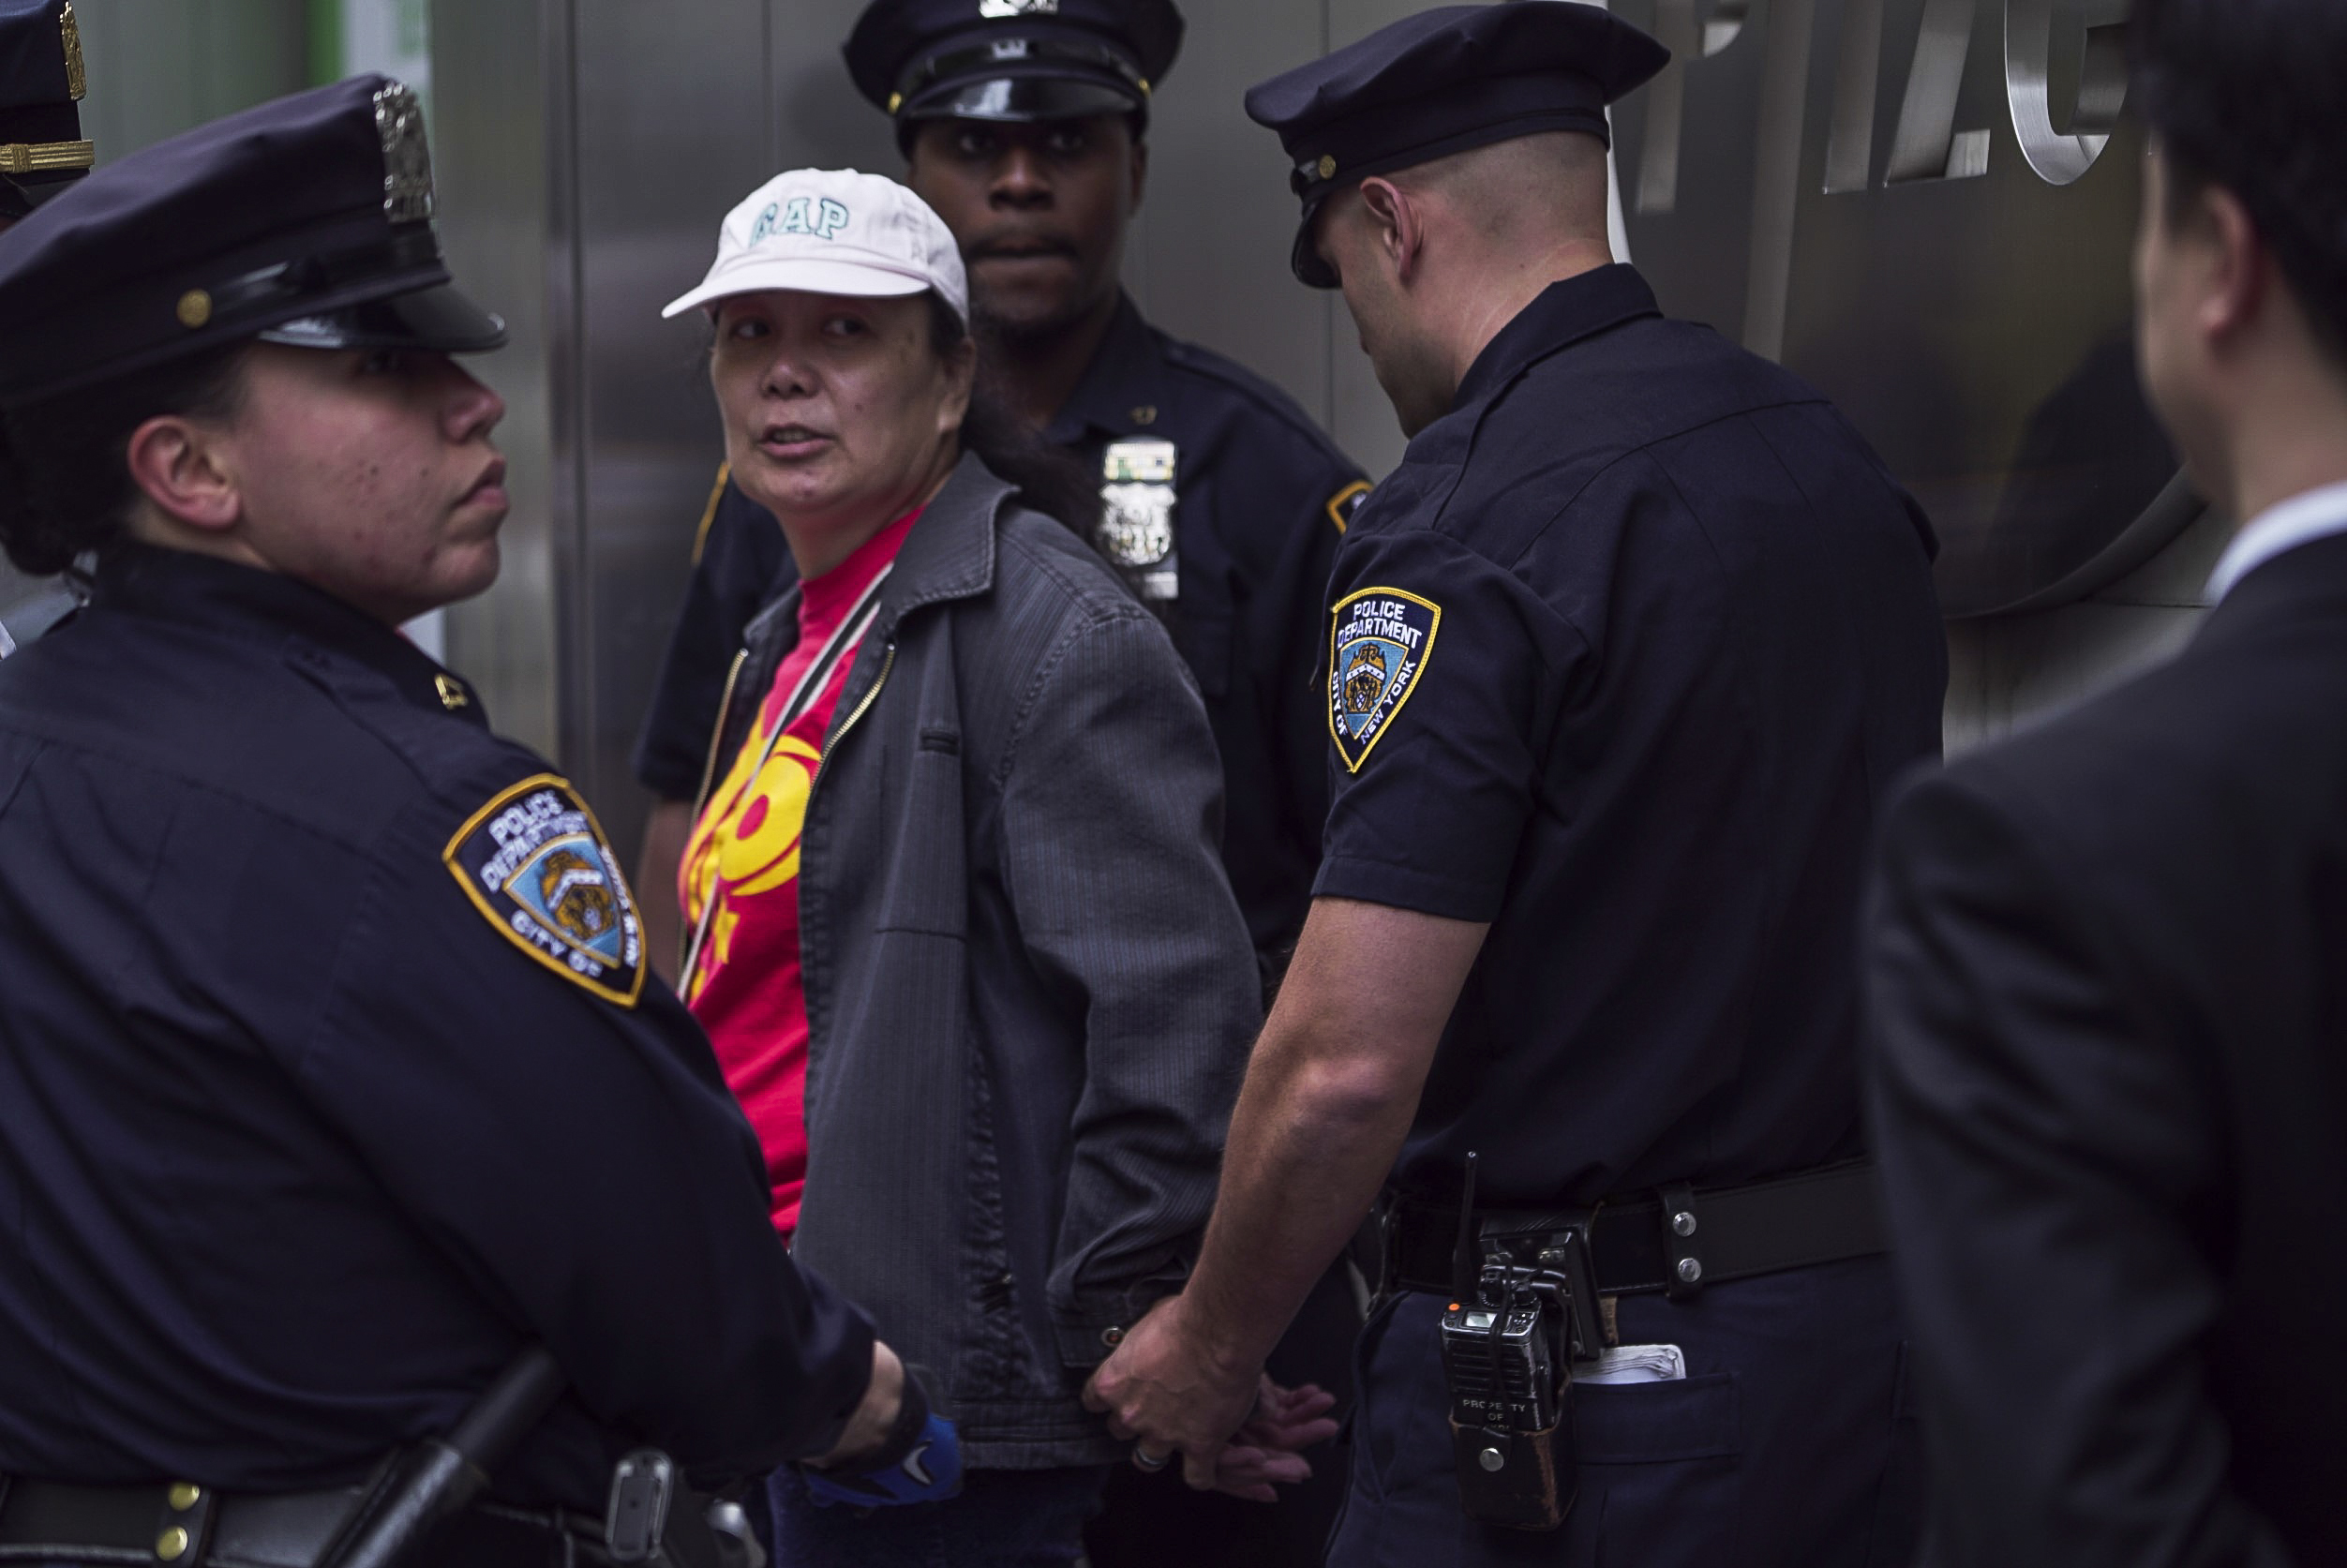 Li Huahong, a proxy agent of the Chinese regime, is arrested by police officers in New York City on May 13, 2016. (Provided by a reader)